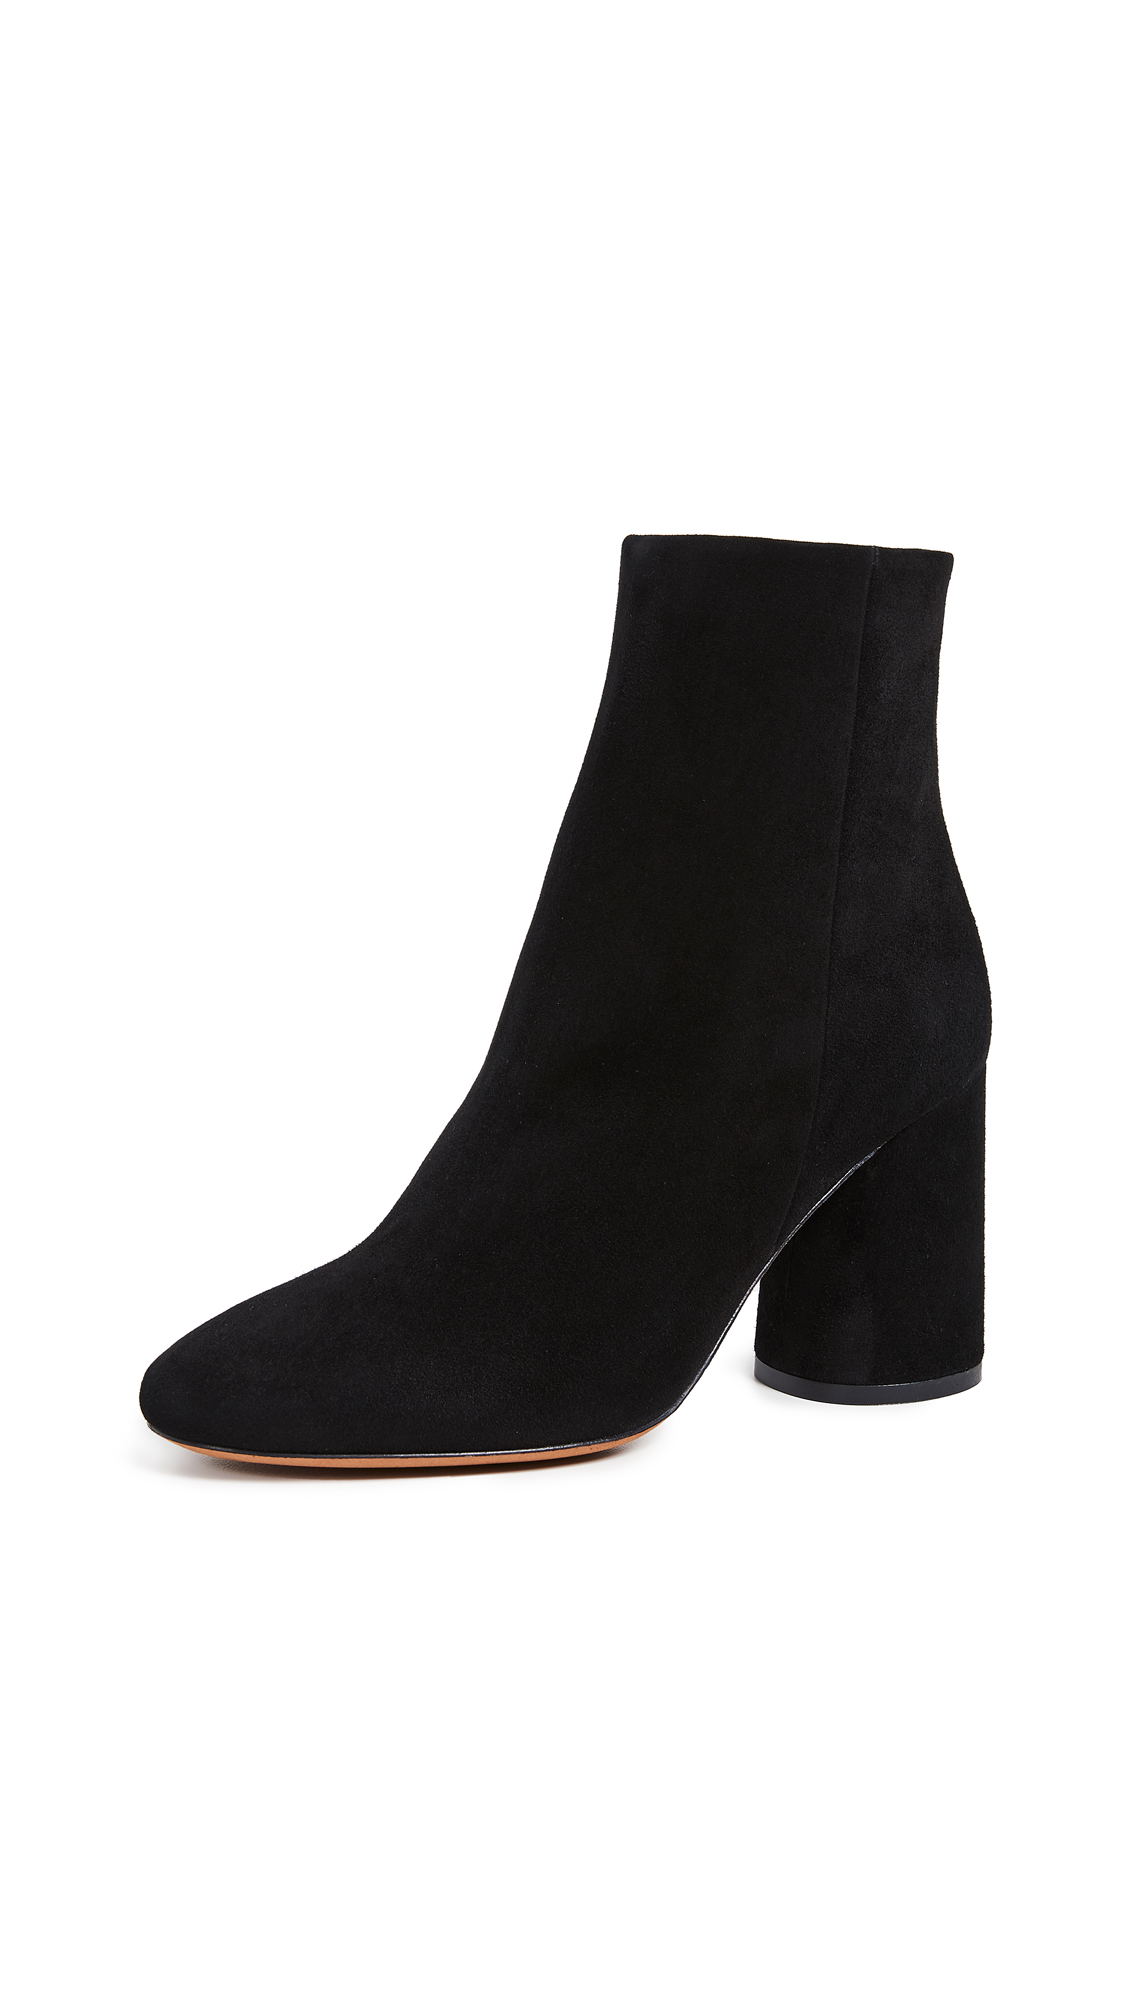 Vince Ridley Booties - Black